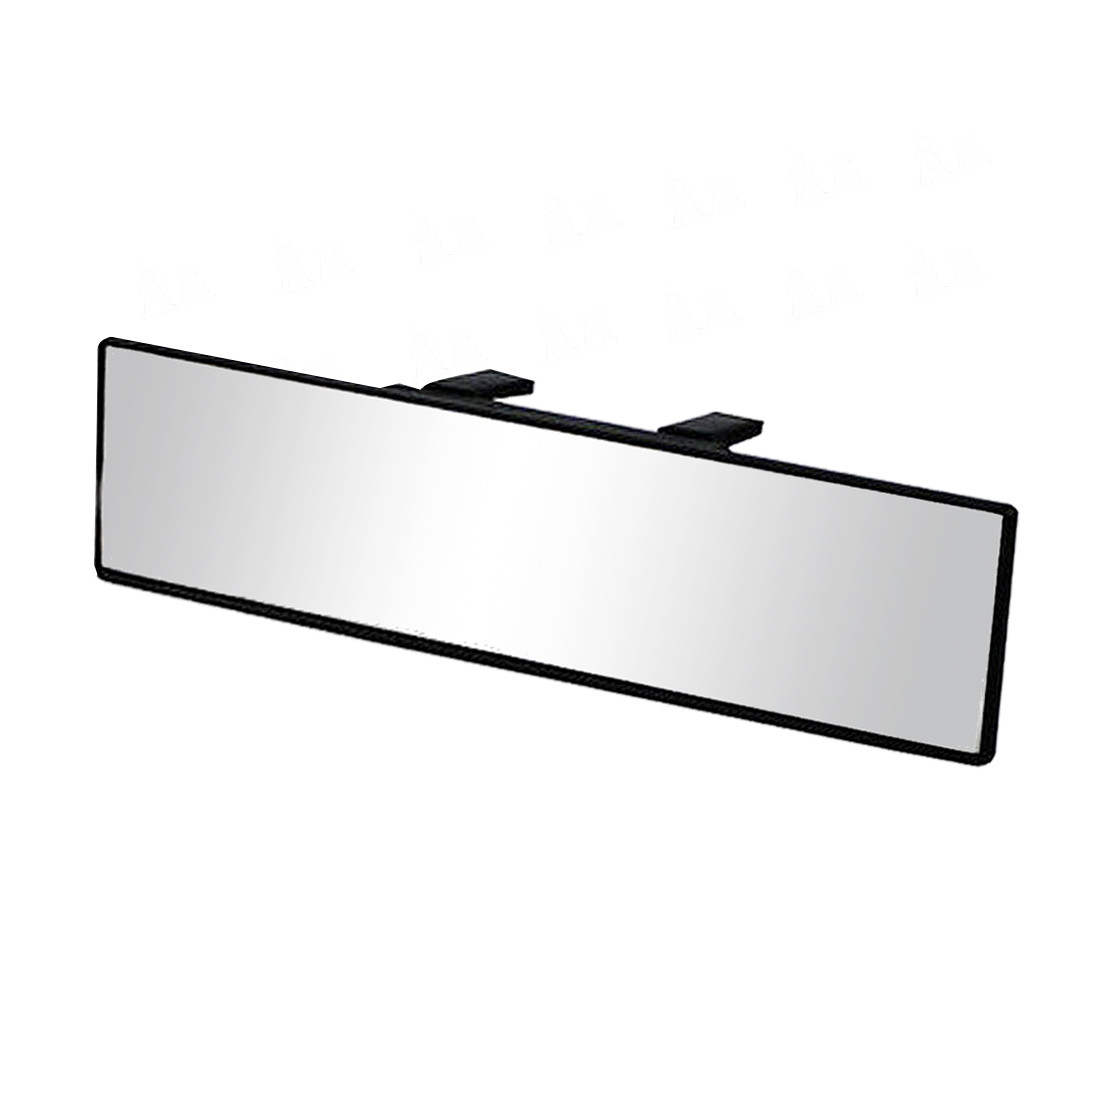 300mm Wide Flat Interior Clip On Rear View Mirror Universal for Car Auto